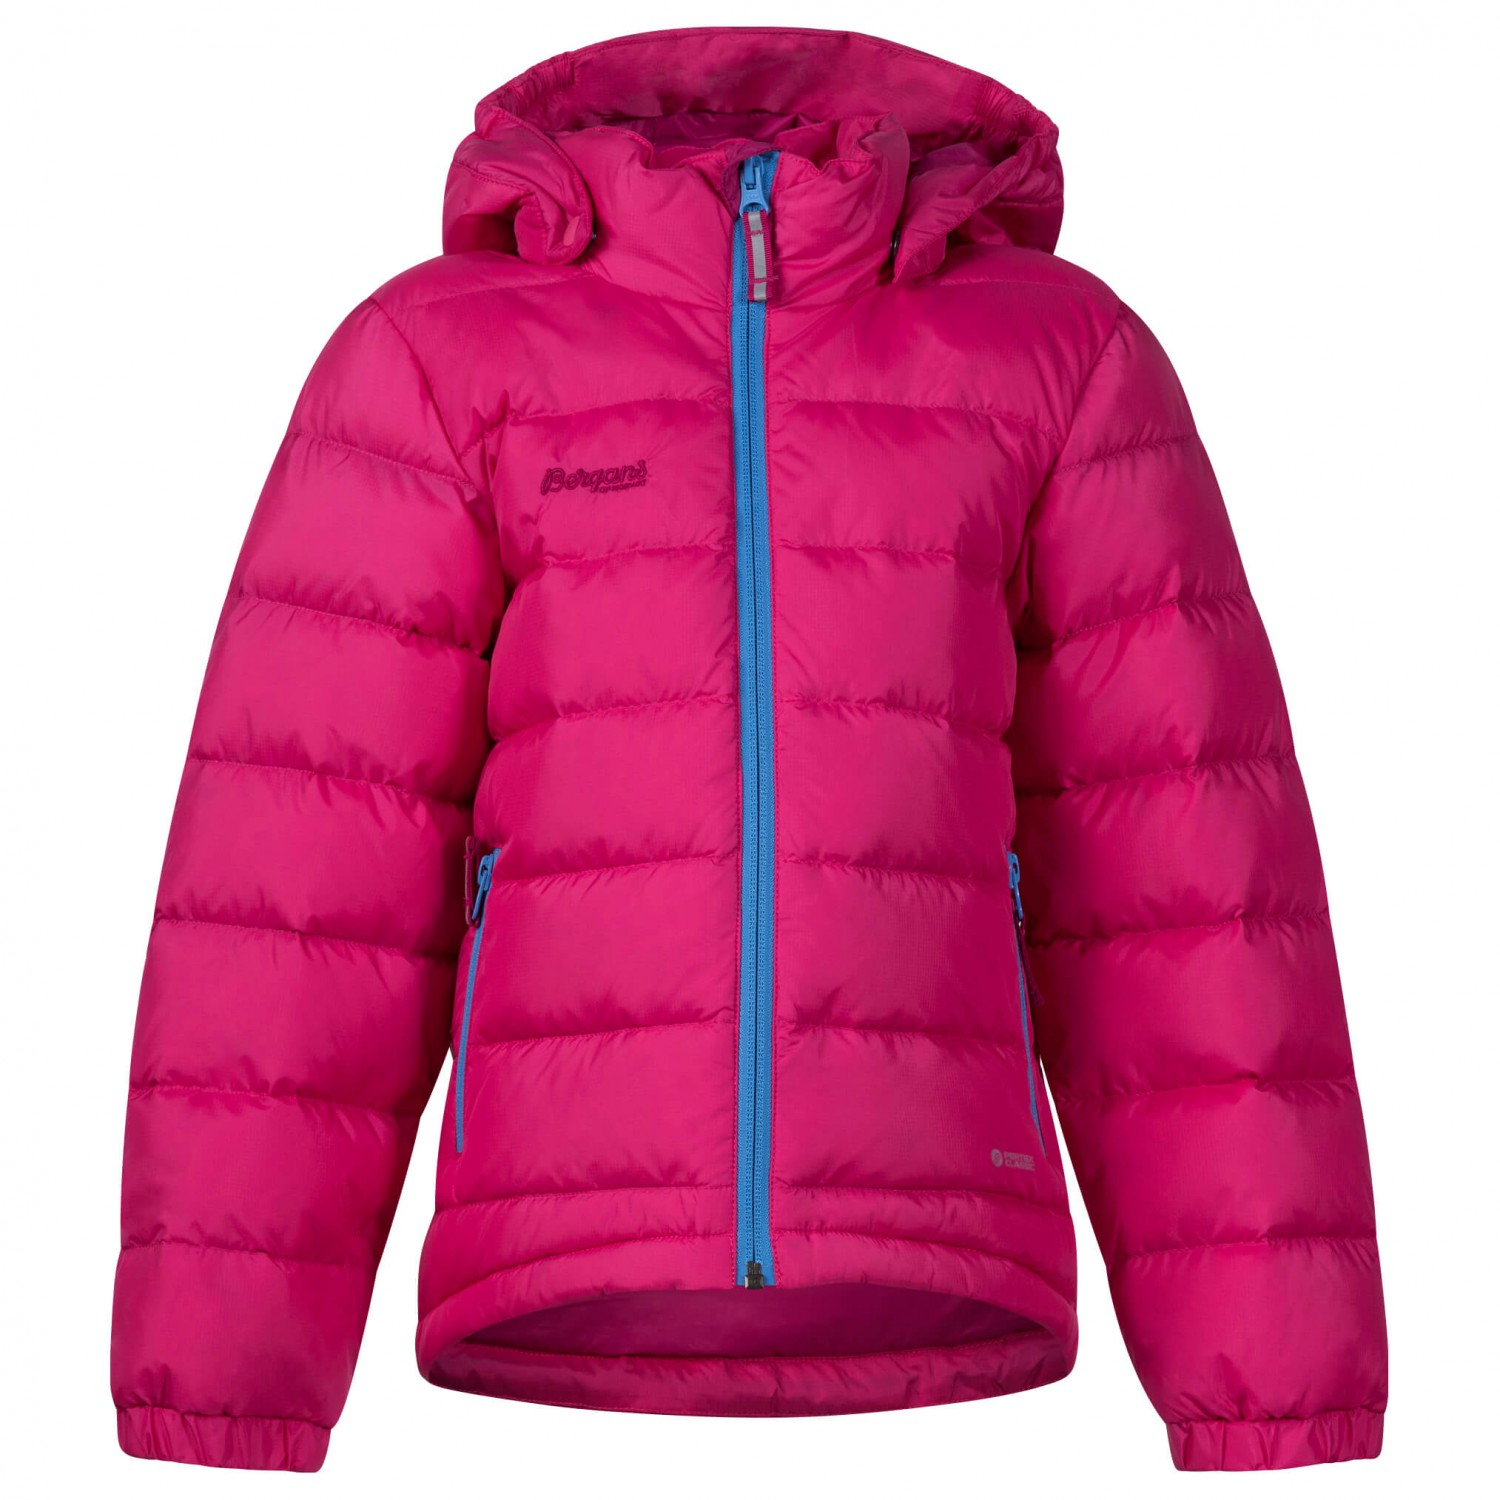 Bergans Down Kids Jacket Daunenjacke